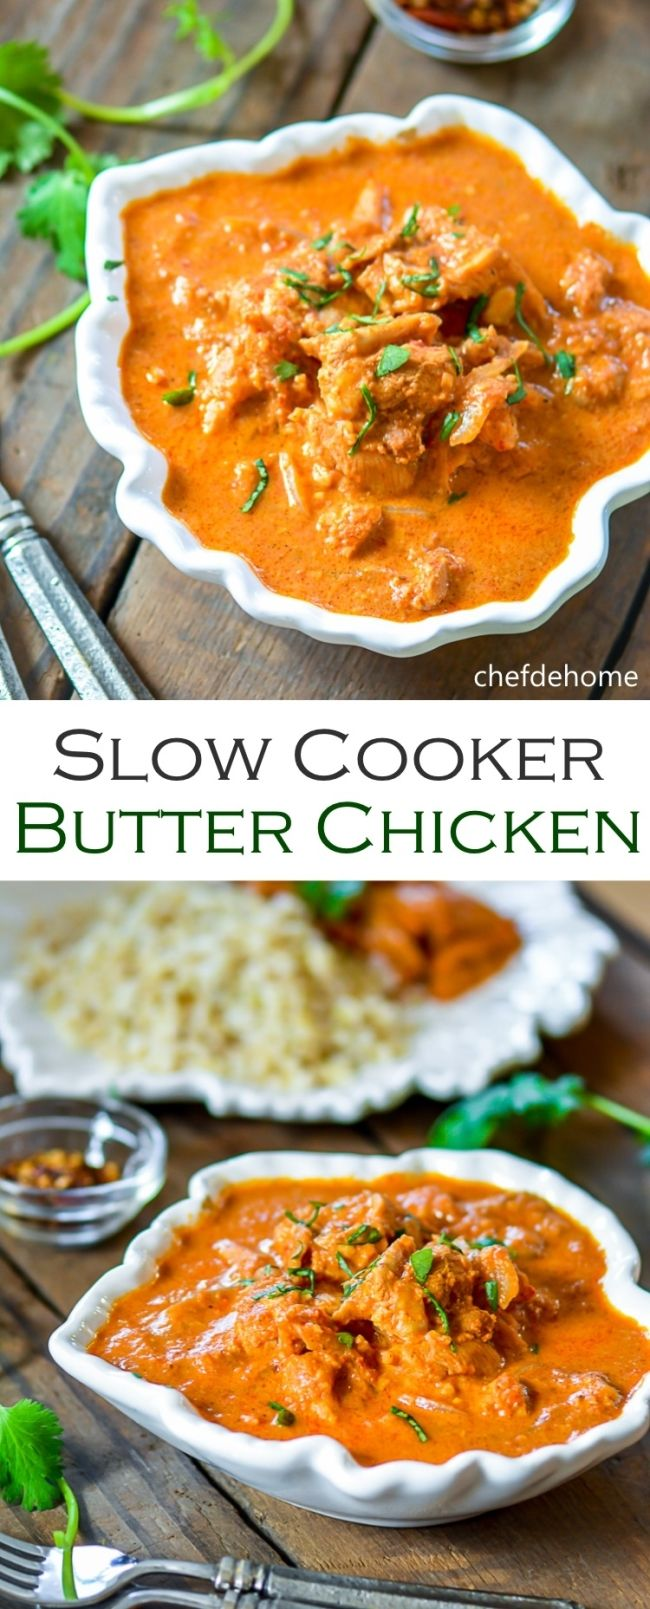 Slow Cooker Restaurant Style Butter Chicken for an Easy Homemade Indian Chicken Dinner THIS LOOKS DELICIOUS! I CAN'T WAIT TO TRY IT! I'LL MAKE SOME HOMEMADE NAAN BREAD, AND A DELICIOUS INDIAN STYLE SPICED HEAD OF CAULIFLOWER. THE RECIPE IS POSTED ON MY FOREIGN SAVORY BOARD. chefdehome.com